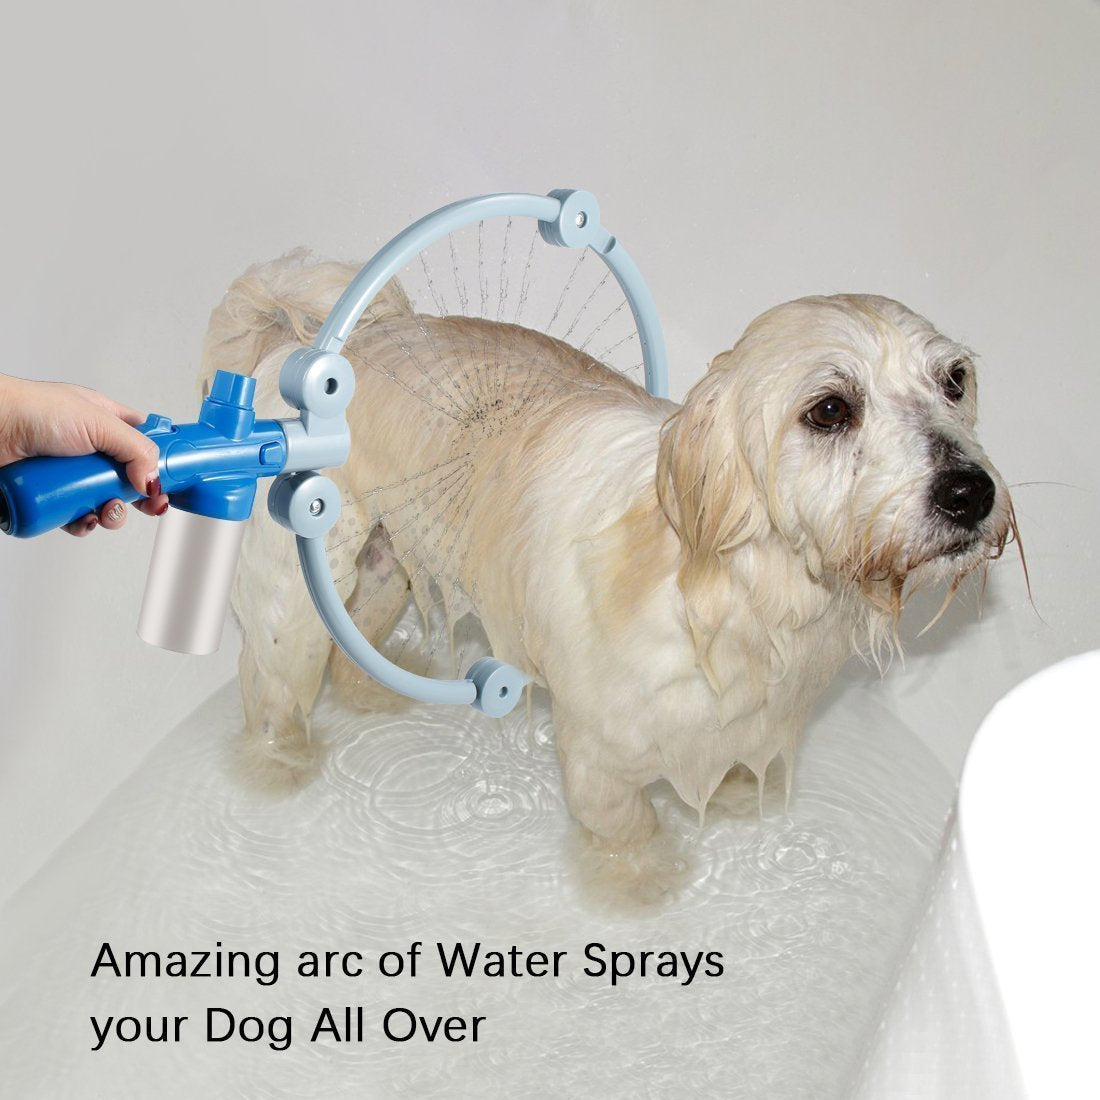 360 Degree Water Jets Pet Clean - Carrywon